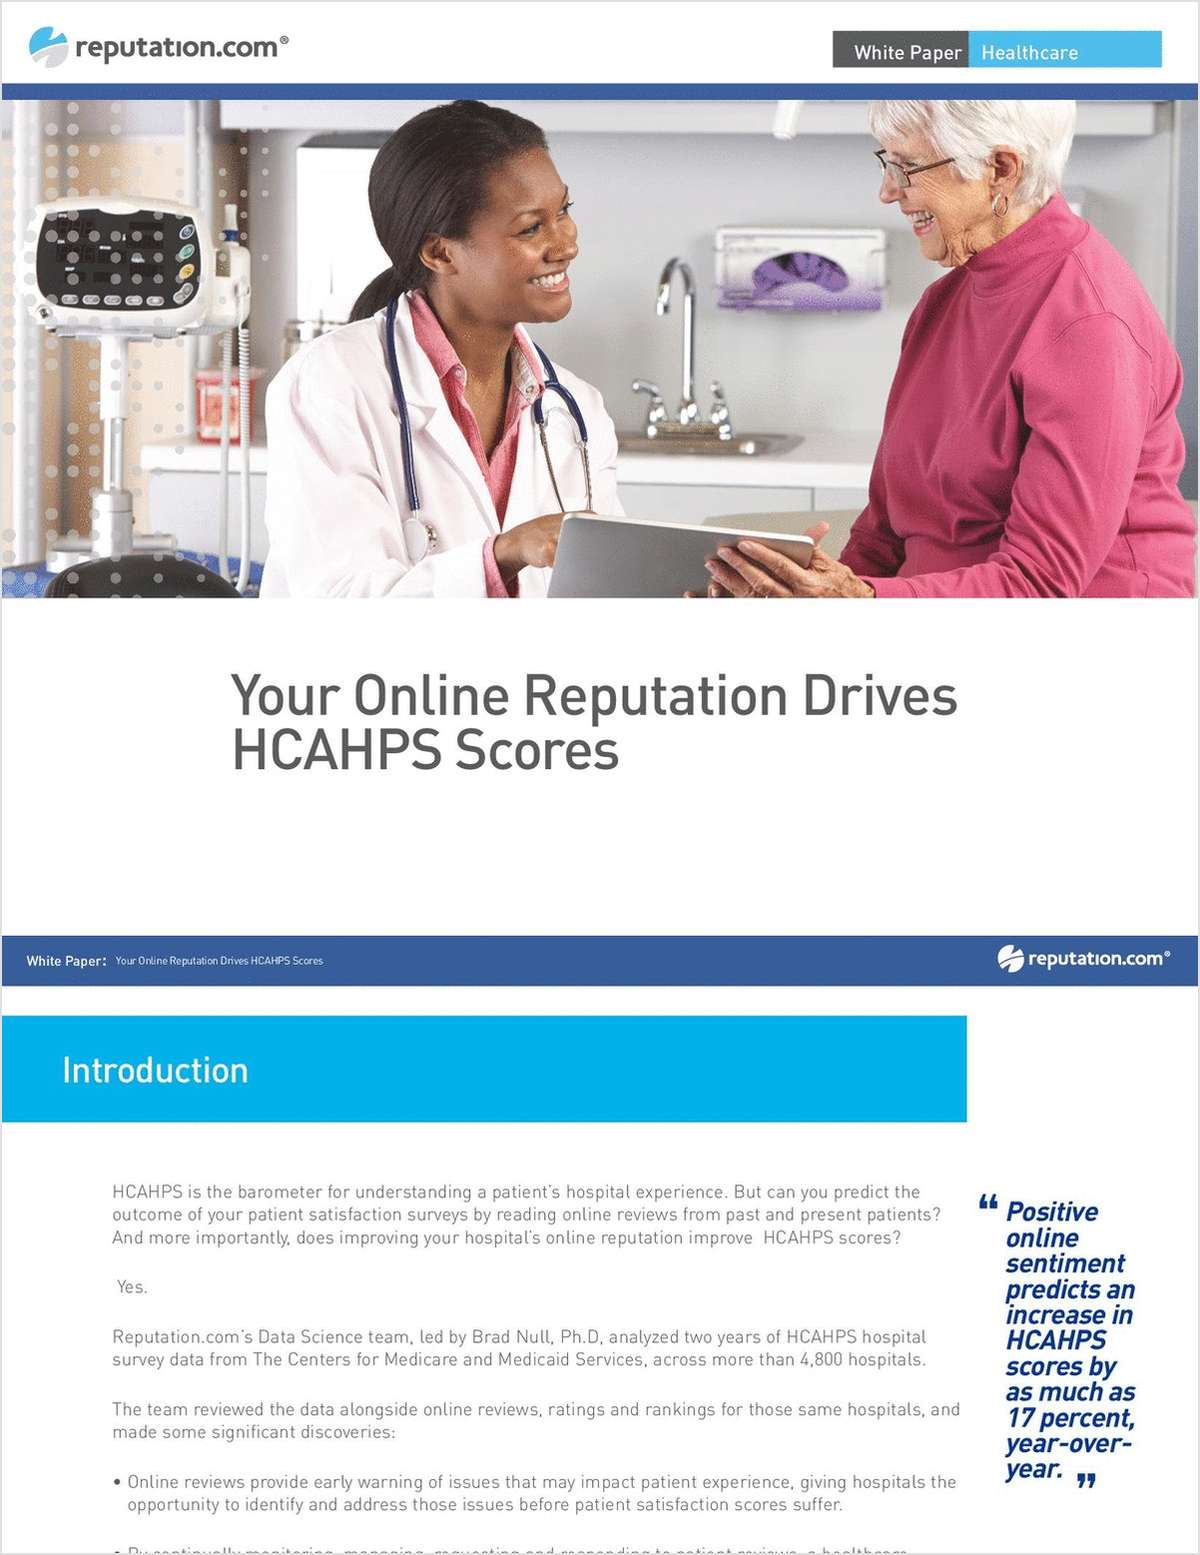 Your Online Reputation Drives HCAHPS Scores